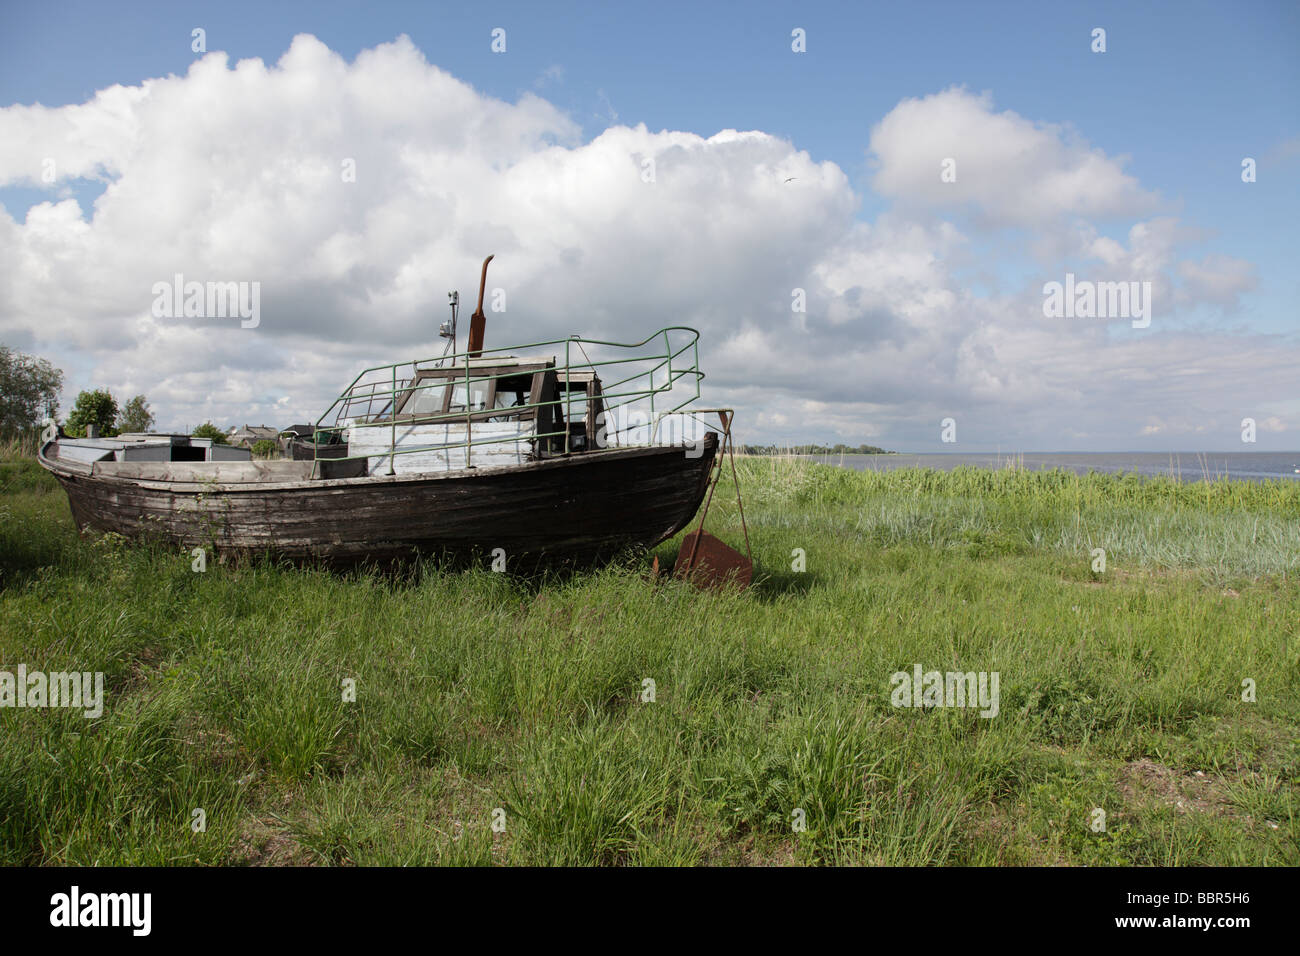 Beached old ship at the port of Liu, Estonia, Baltic Nation, Eastern Europe. Photo by Willy Matheisl - Stock Image